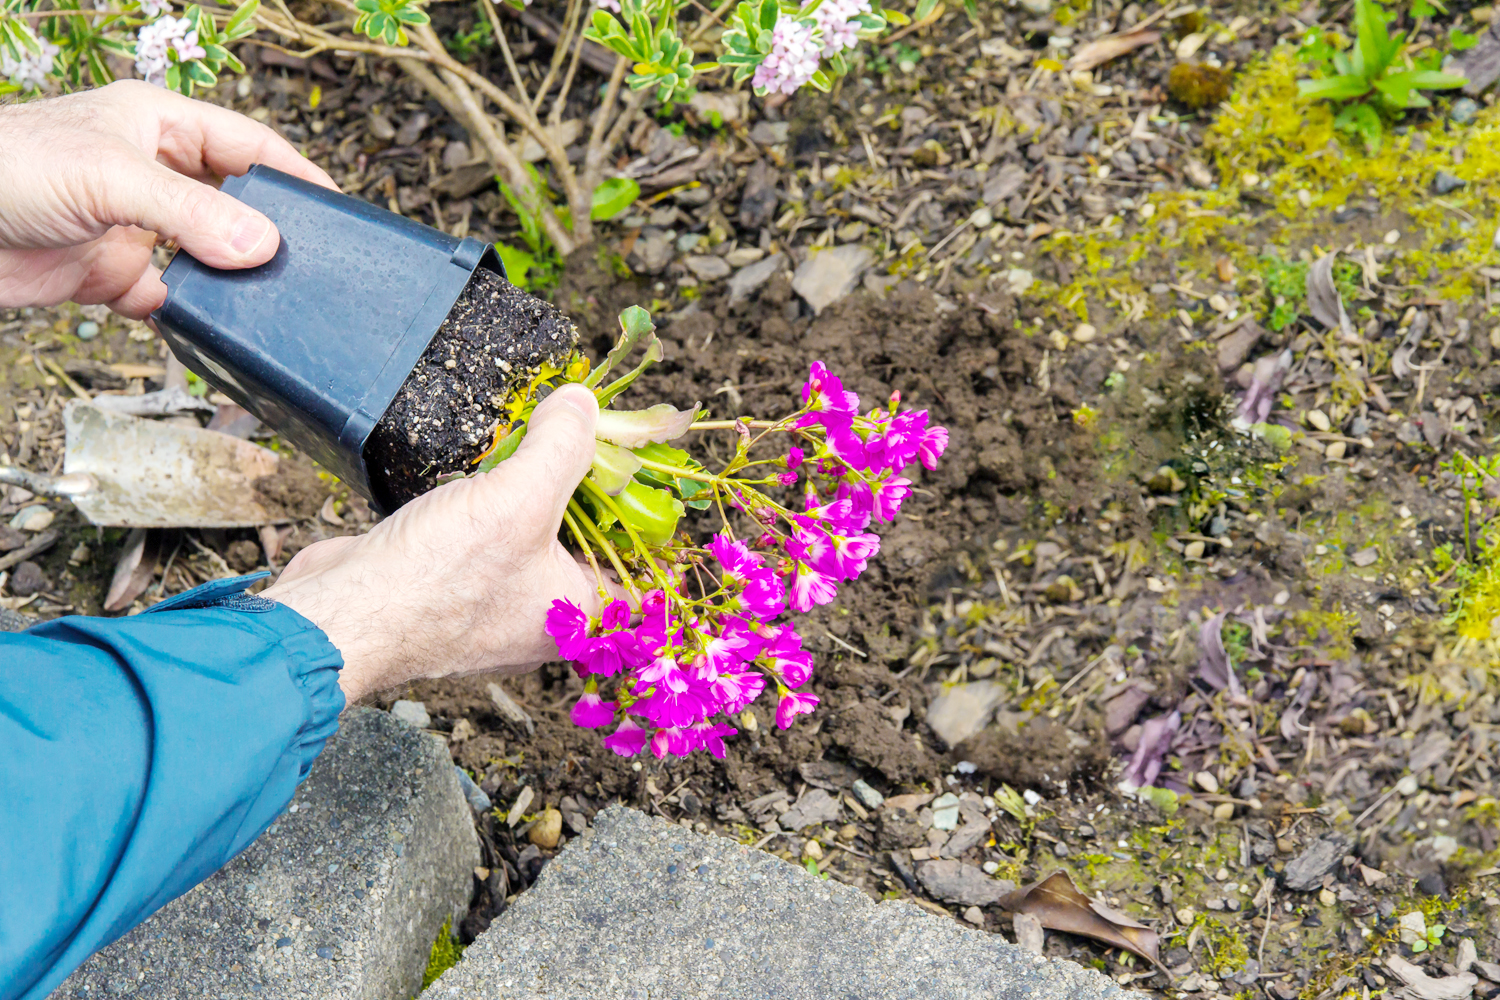 Make your own compost at home with a backyard composting bin. Compost is a beneficial soil amendment that can help your plants grow healthier.